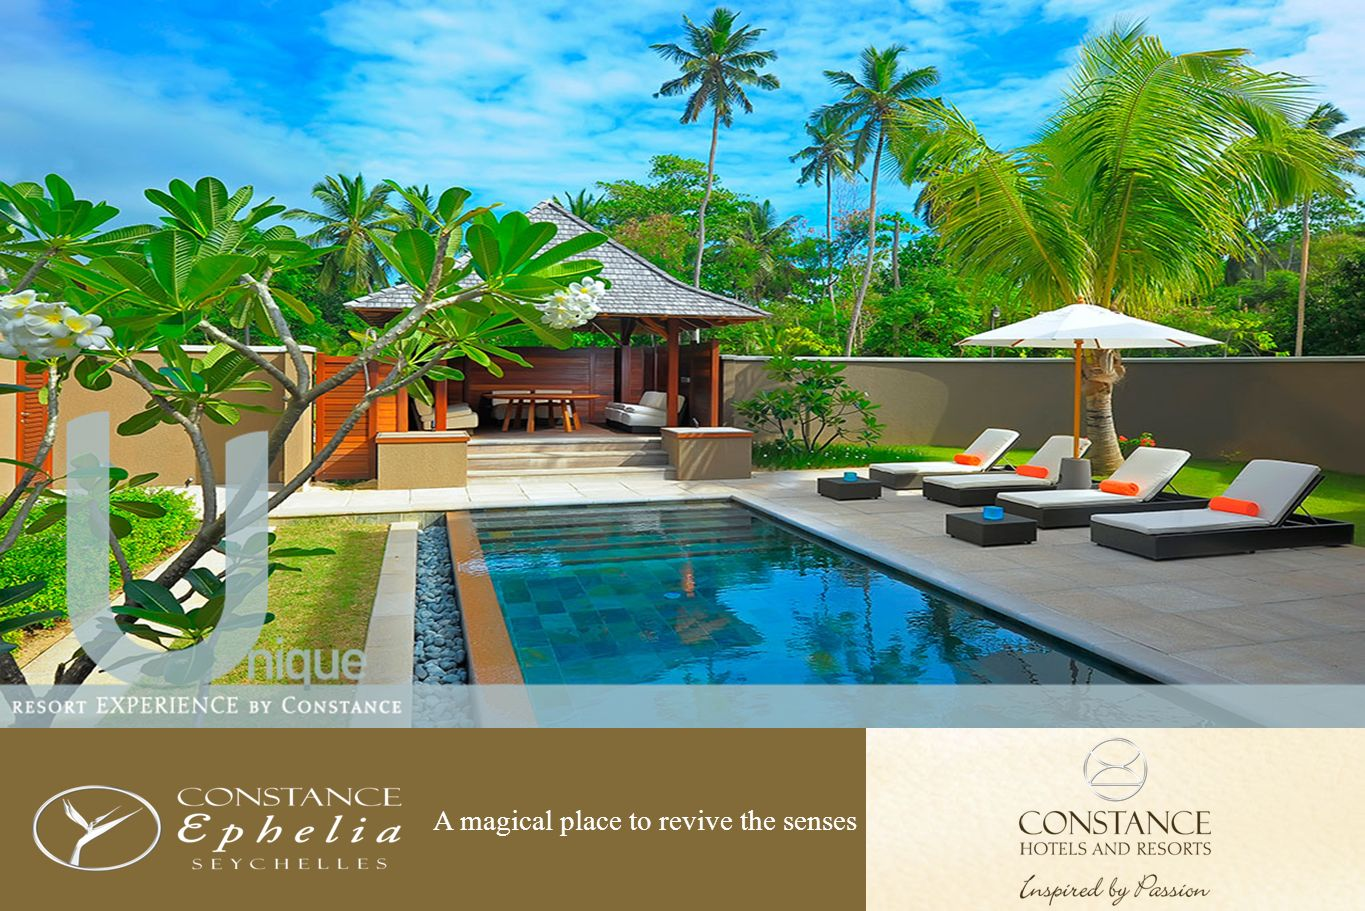 FamilyVilla A magical place to revive the senses